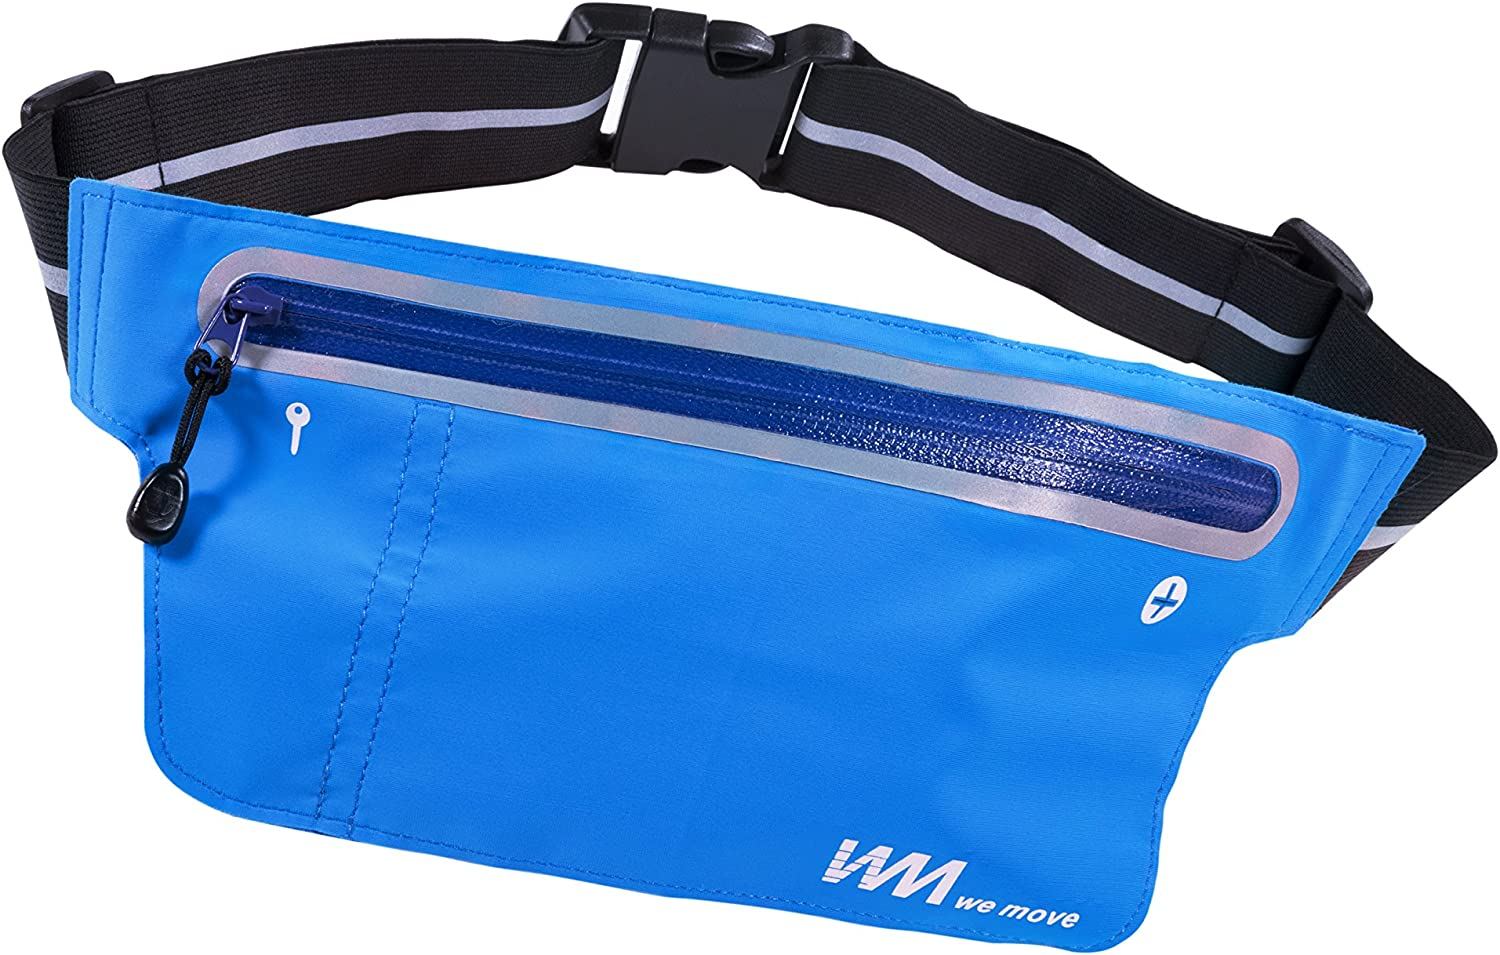 We Move Running Belt Ultrathin Waist Pack, Water Resistant Fabric Reflective Fanny Pack Adjustable Waistband, Fit iphone 6s 6 Plus, 7 Plus Phone Cards Keys